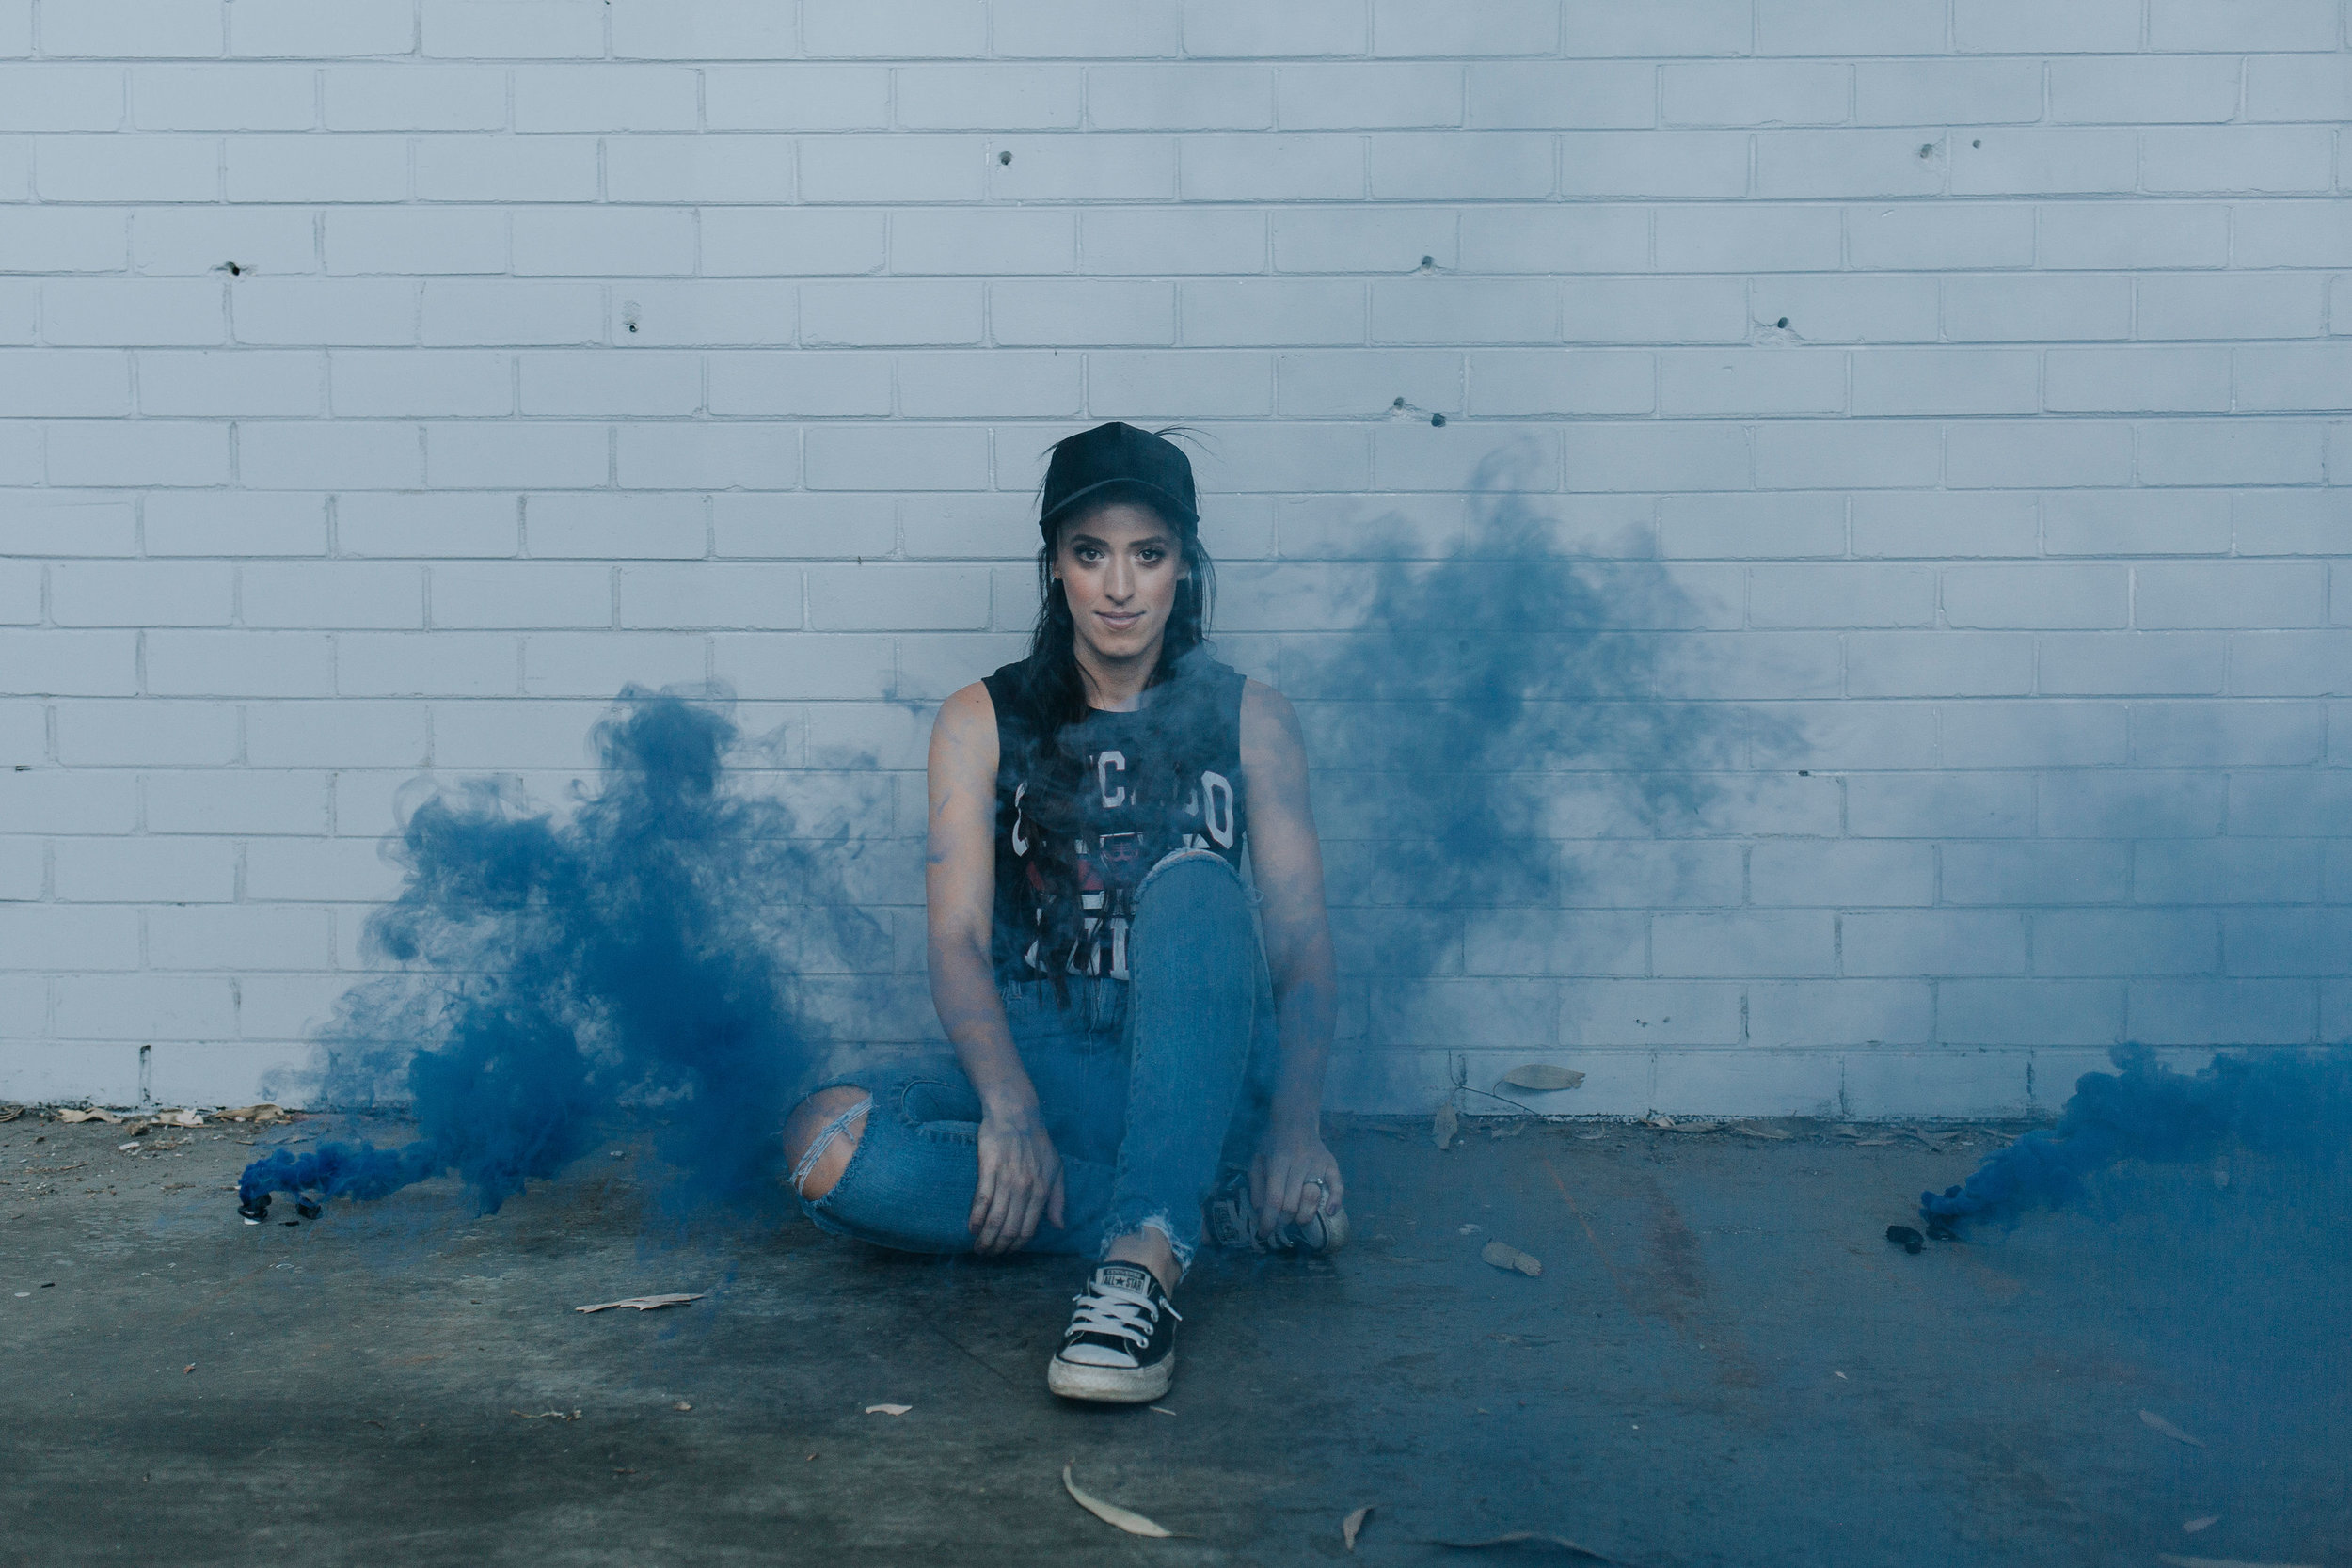 Girl with blue smoke bomb in abandoned warehouse